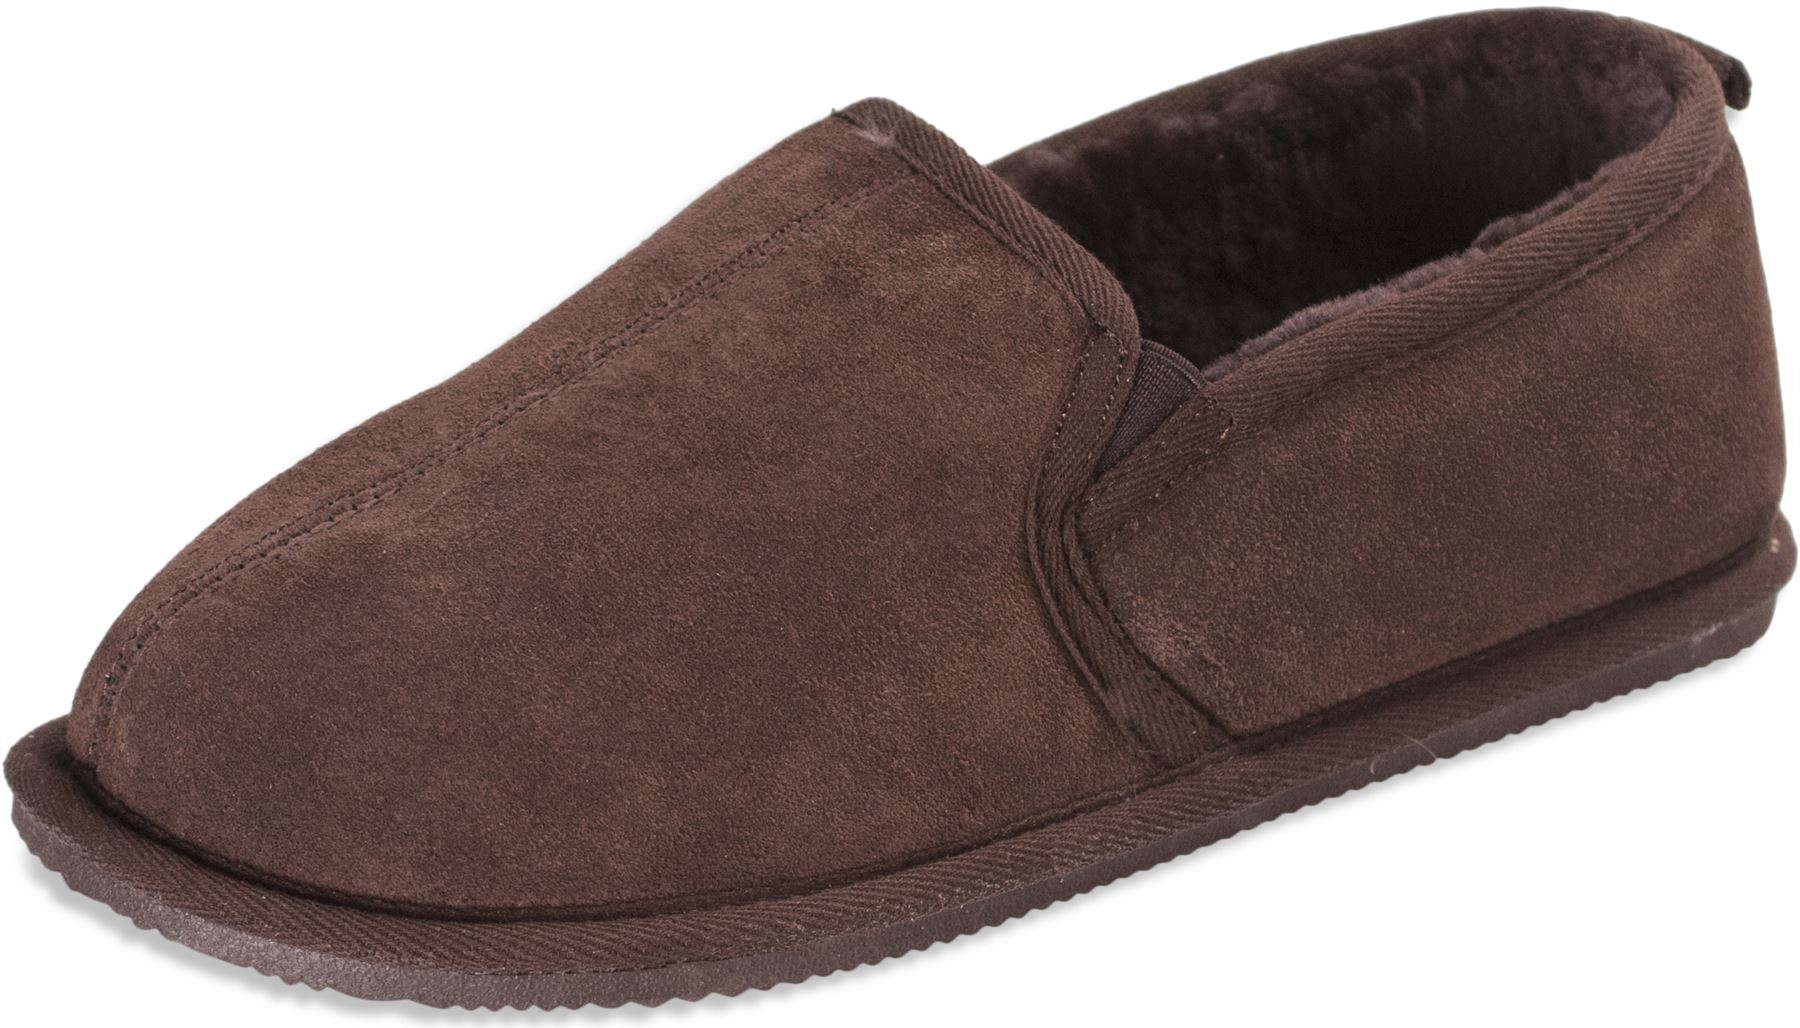 Nordvek  Sole Uomo Genuine Sheepskin Slippers Suede & Hard Sole  Real Größes 6-13 f658bc